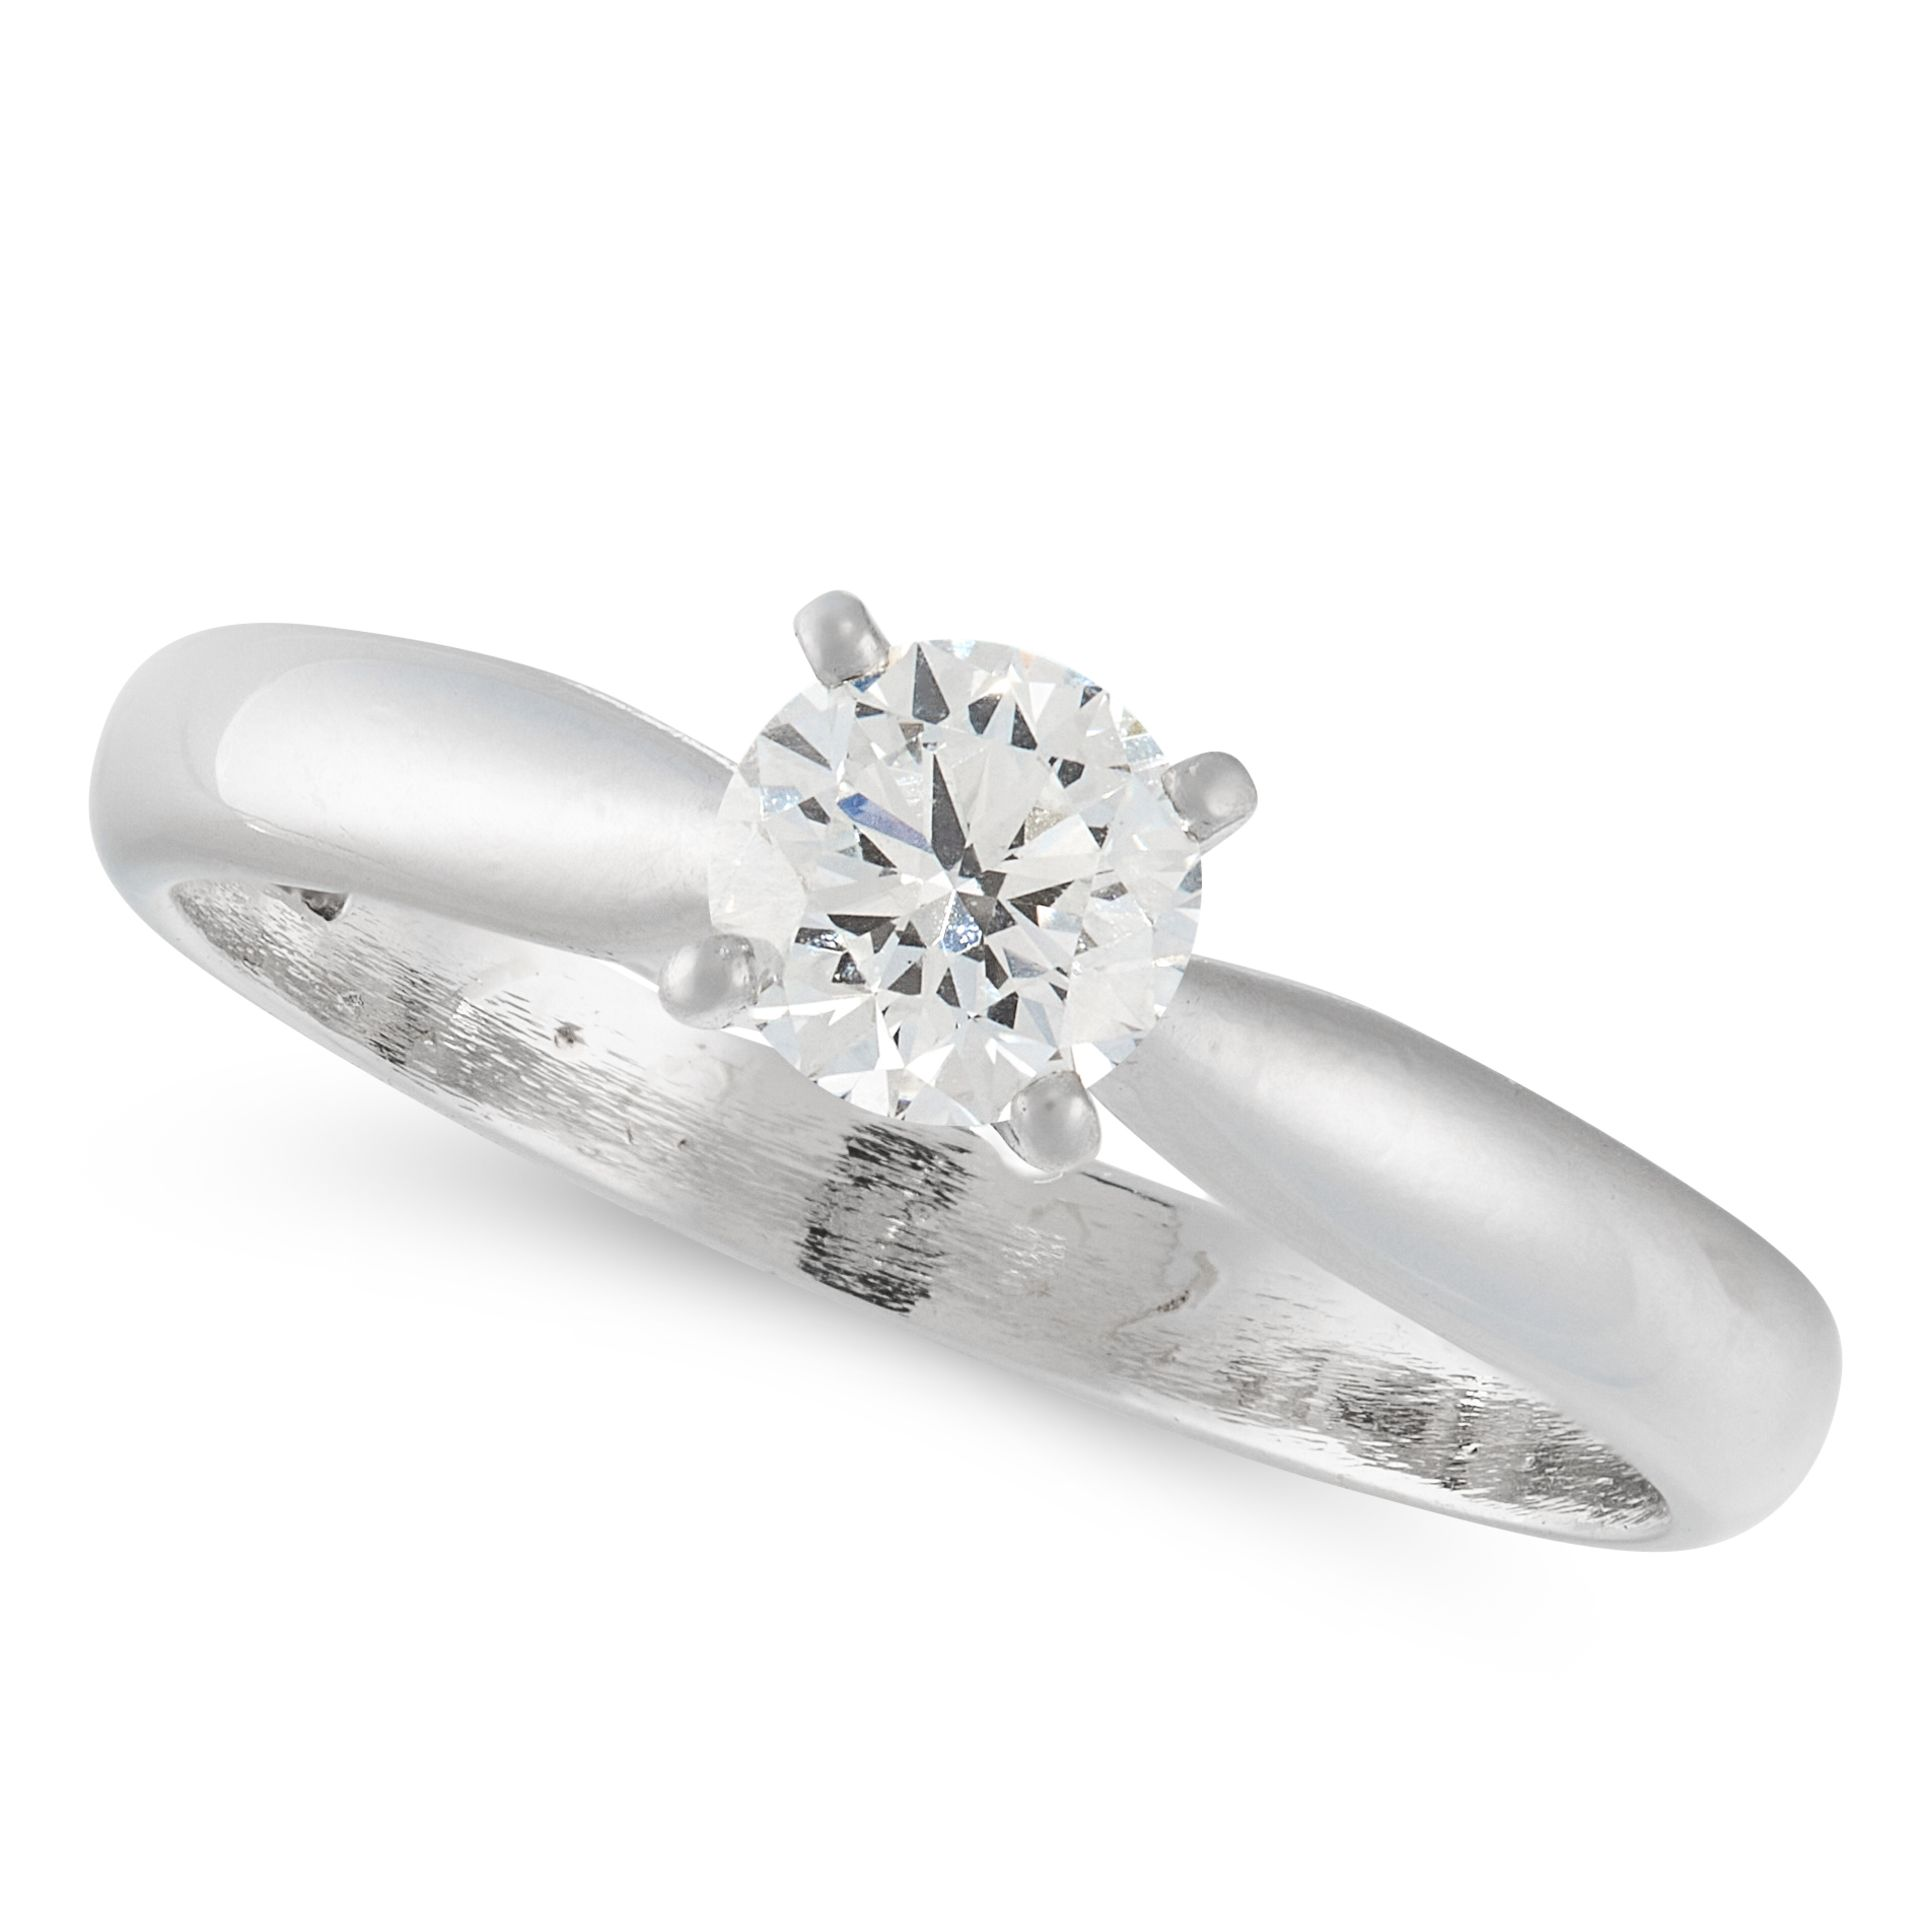 A D FLAWLESS SOLITAIRE DIAMOND ENGAGEMENT RING in platinum, set with a round brilliant cut diamond